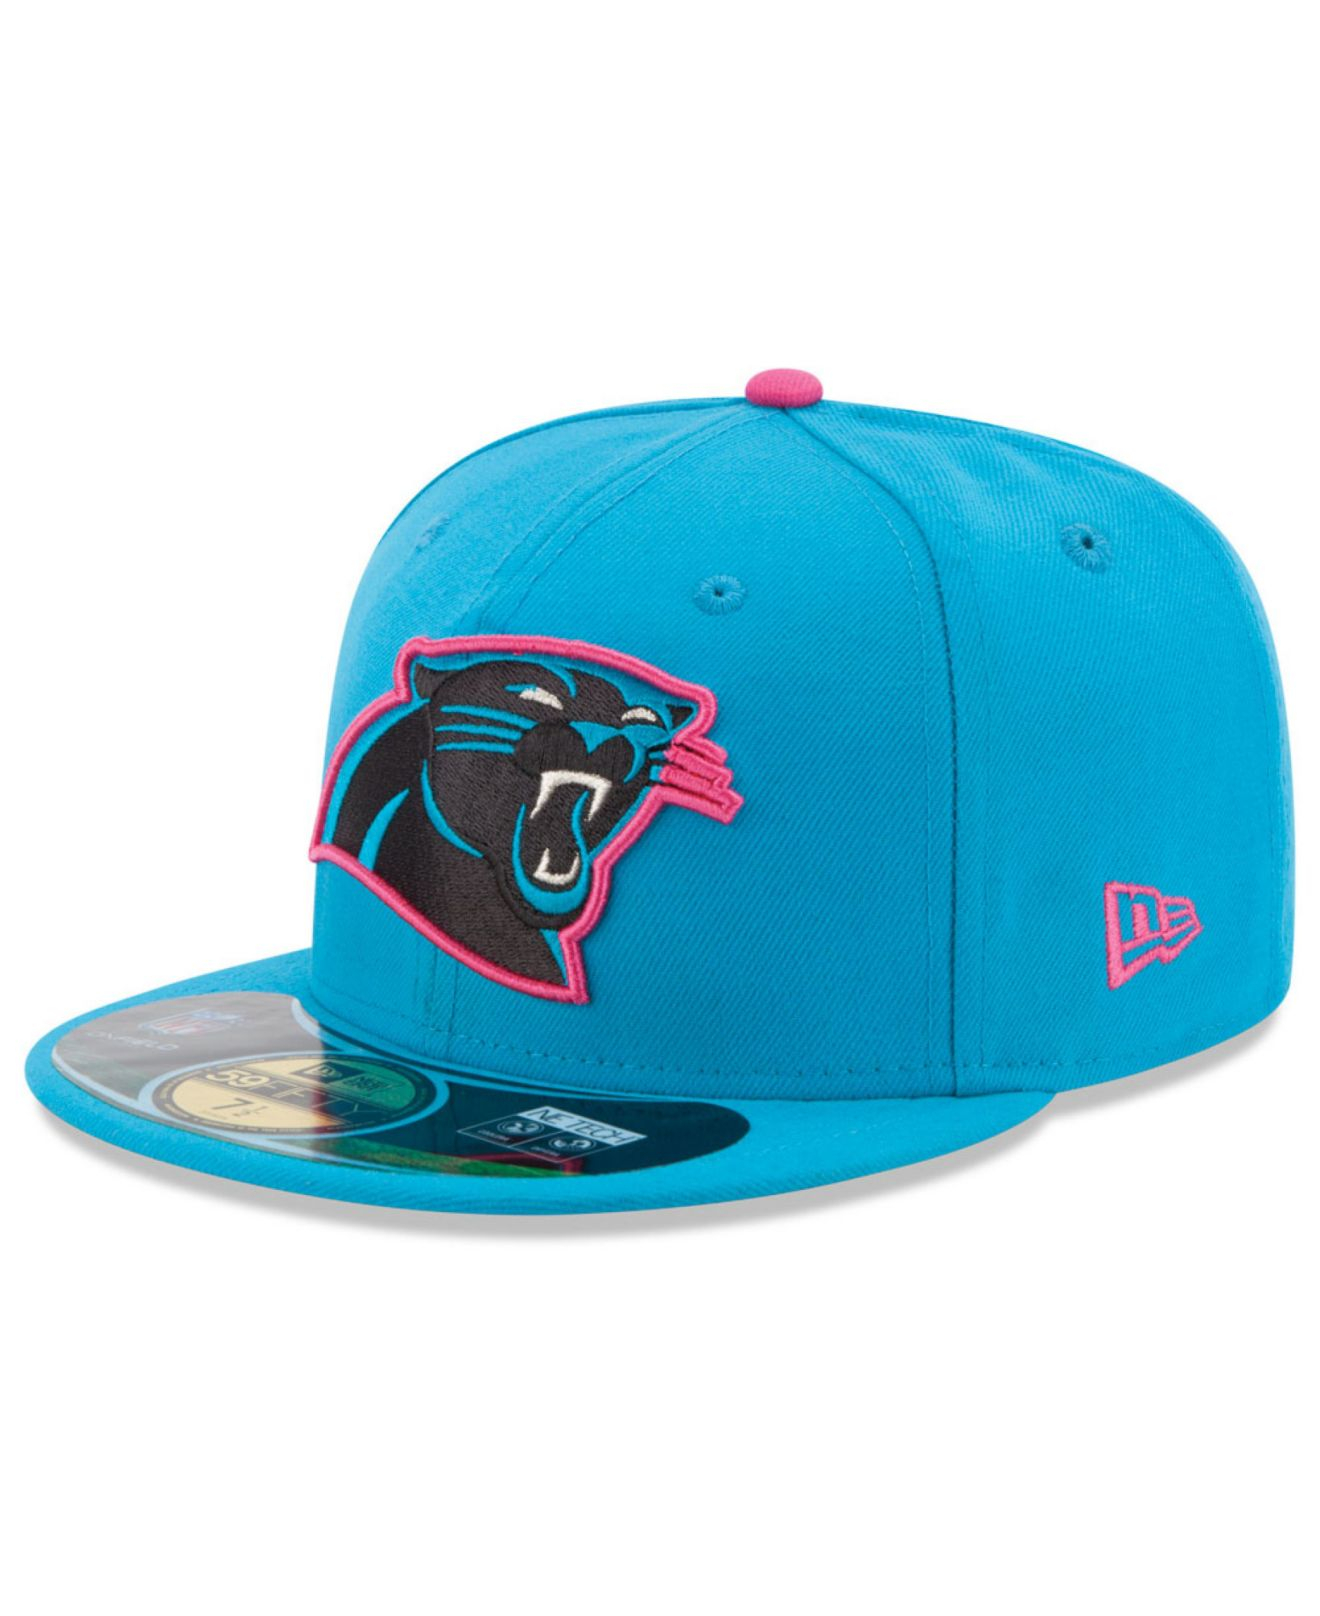 Lyst - KTZ Carolina Panthers Breast Cancer Awareness 59Fifty Cap in Blue  for Men ff195b962